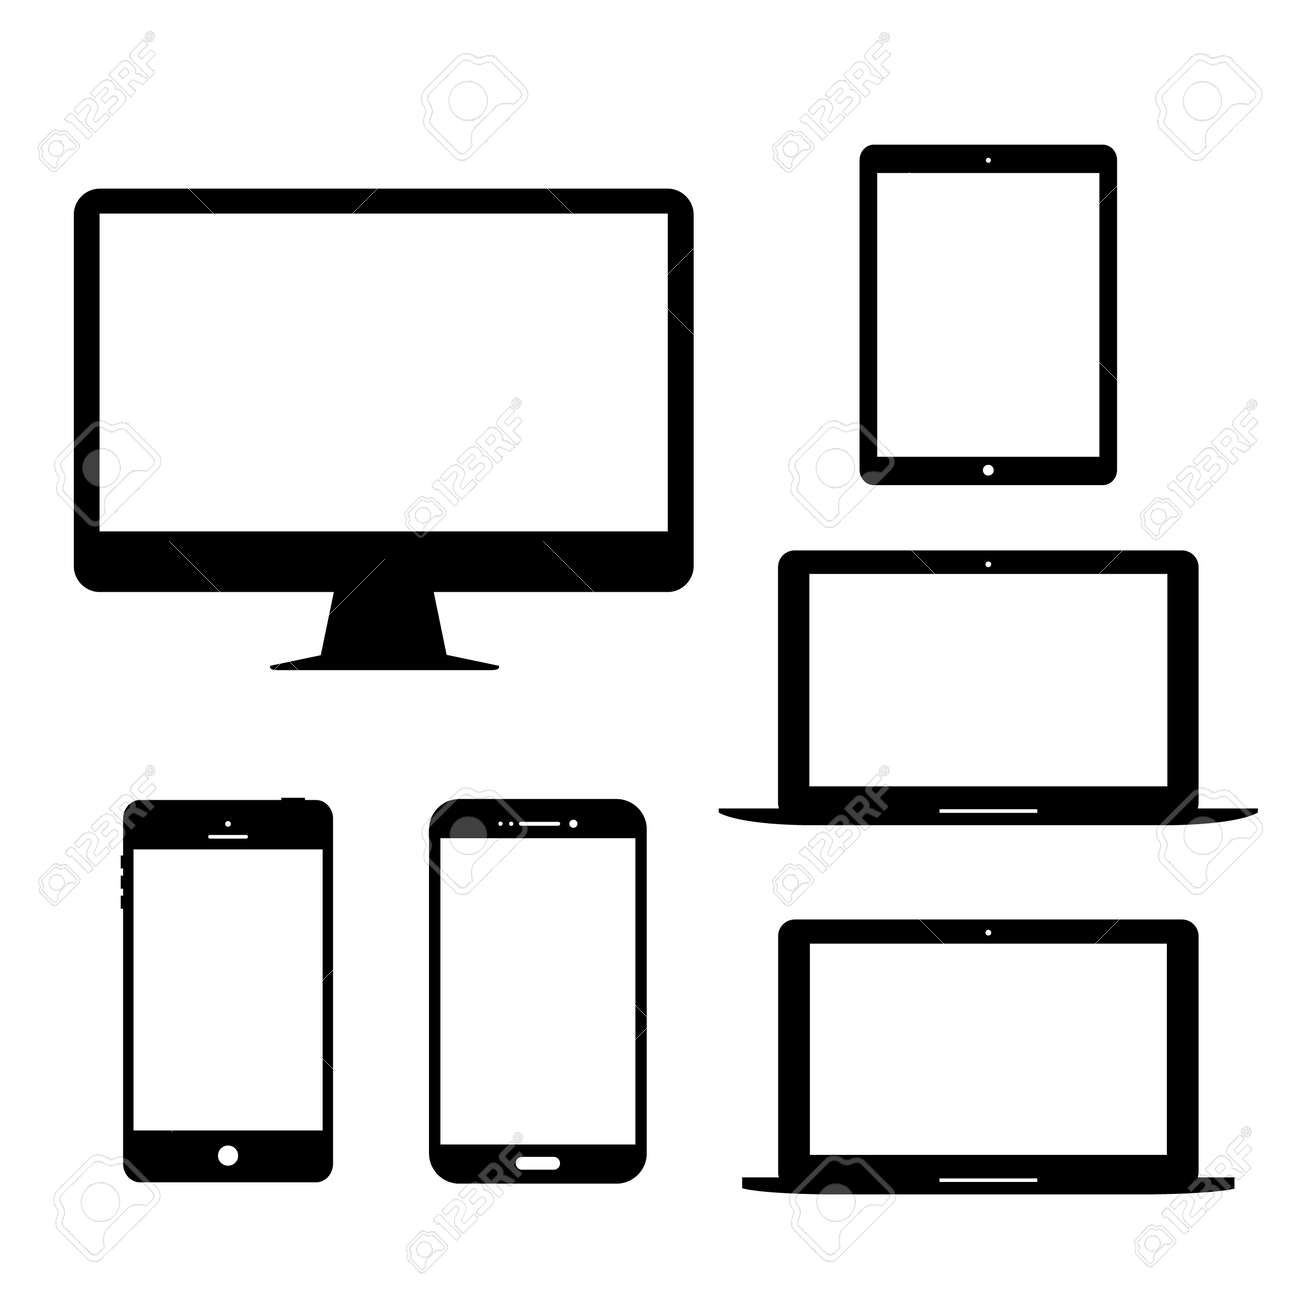 Computer monitor laptop tablet Mobile Phone Electronic gadgets Vector Icon - 50375000